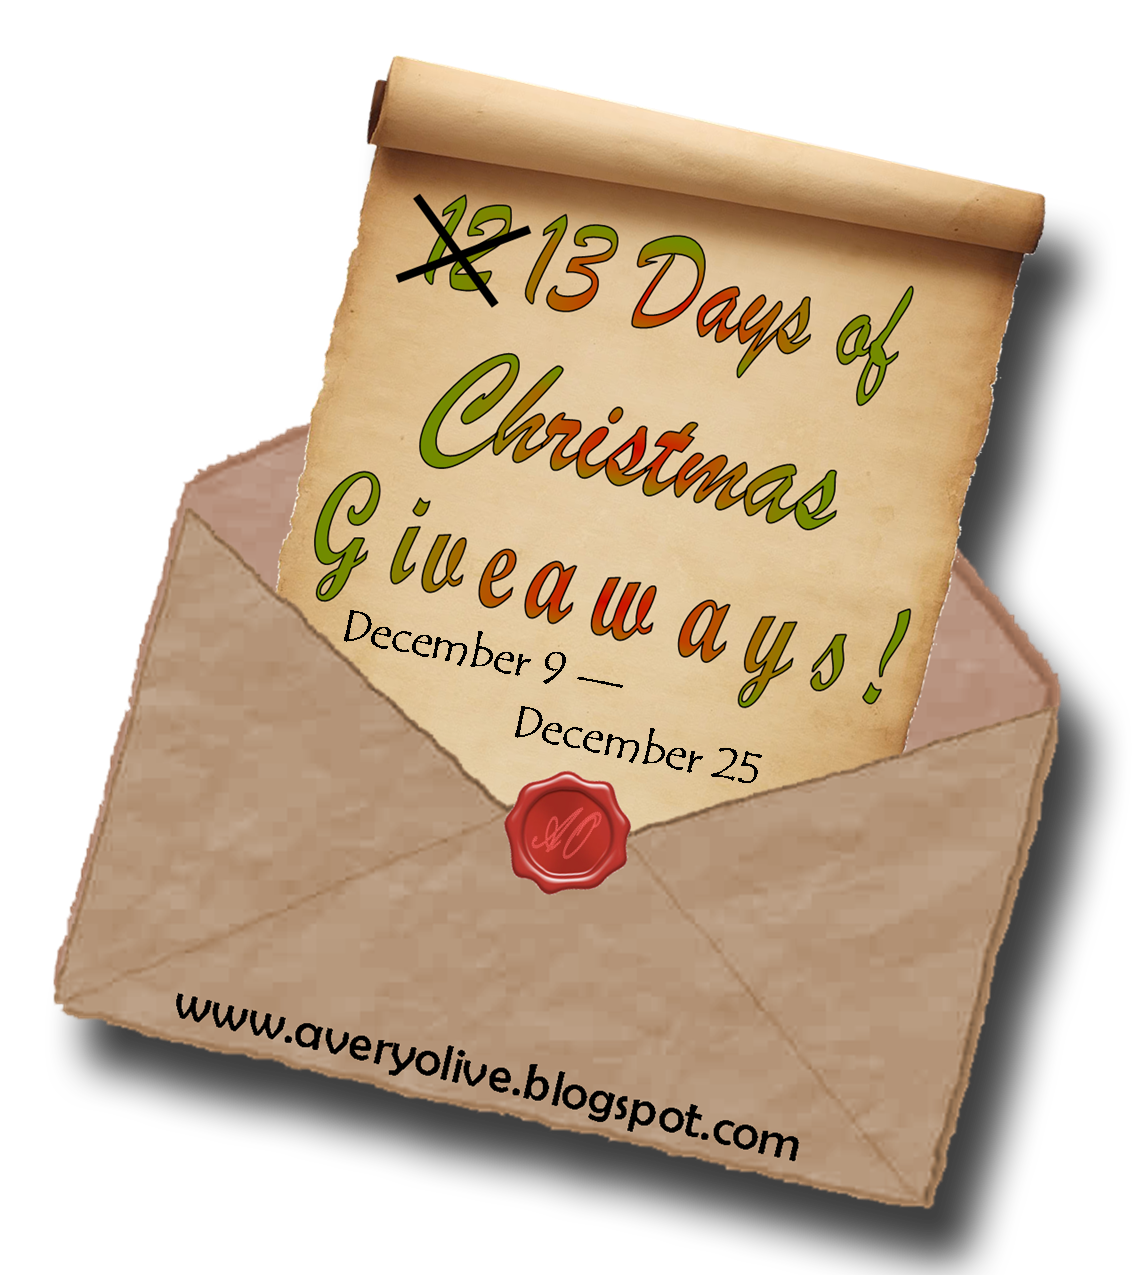 Avery Olive: The 13 Days of Christmas Giveaway and Showcase ...